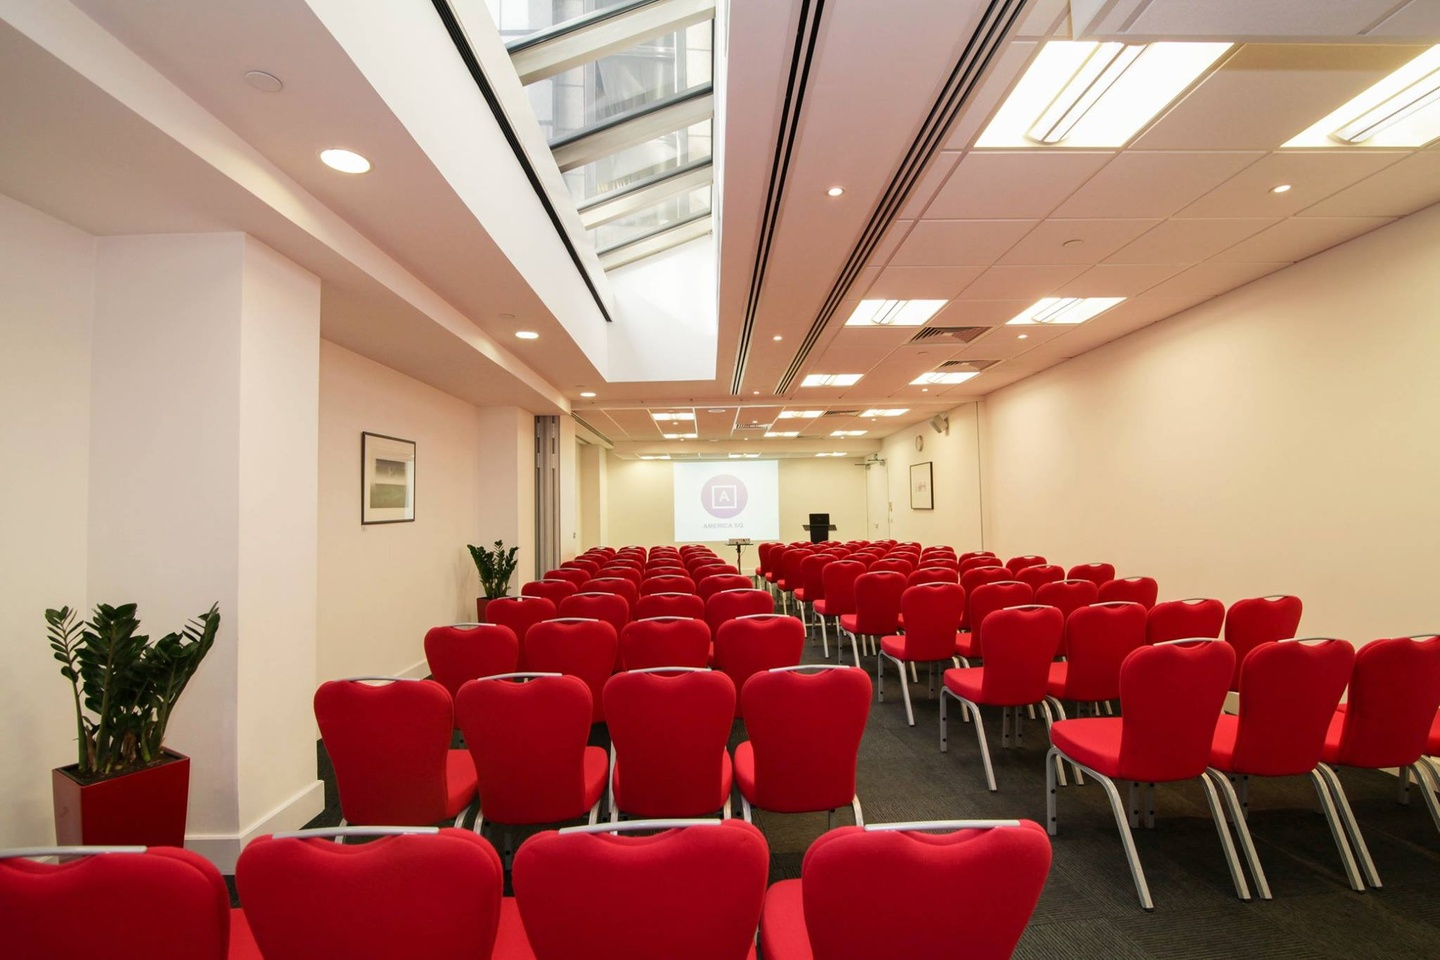 London training rooms Meeting room America Square - Aldgate & Bishopsgate Suite image 1